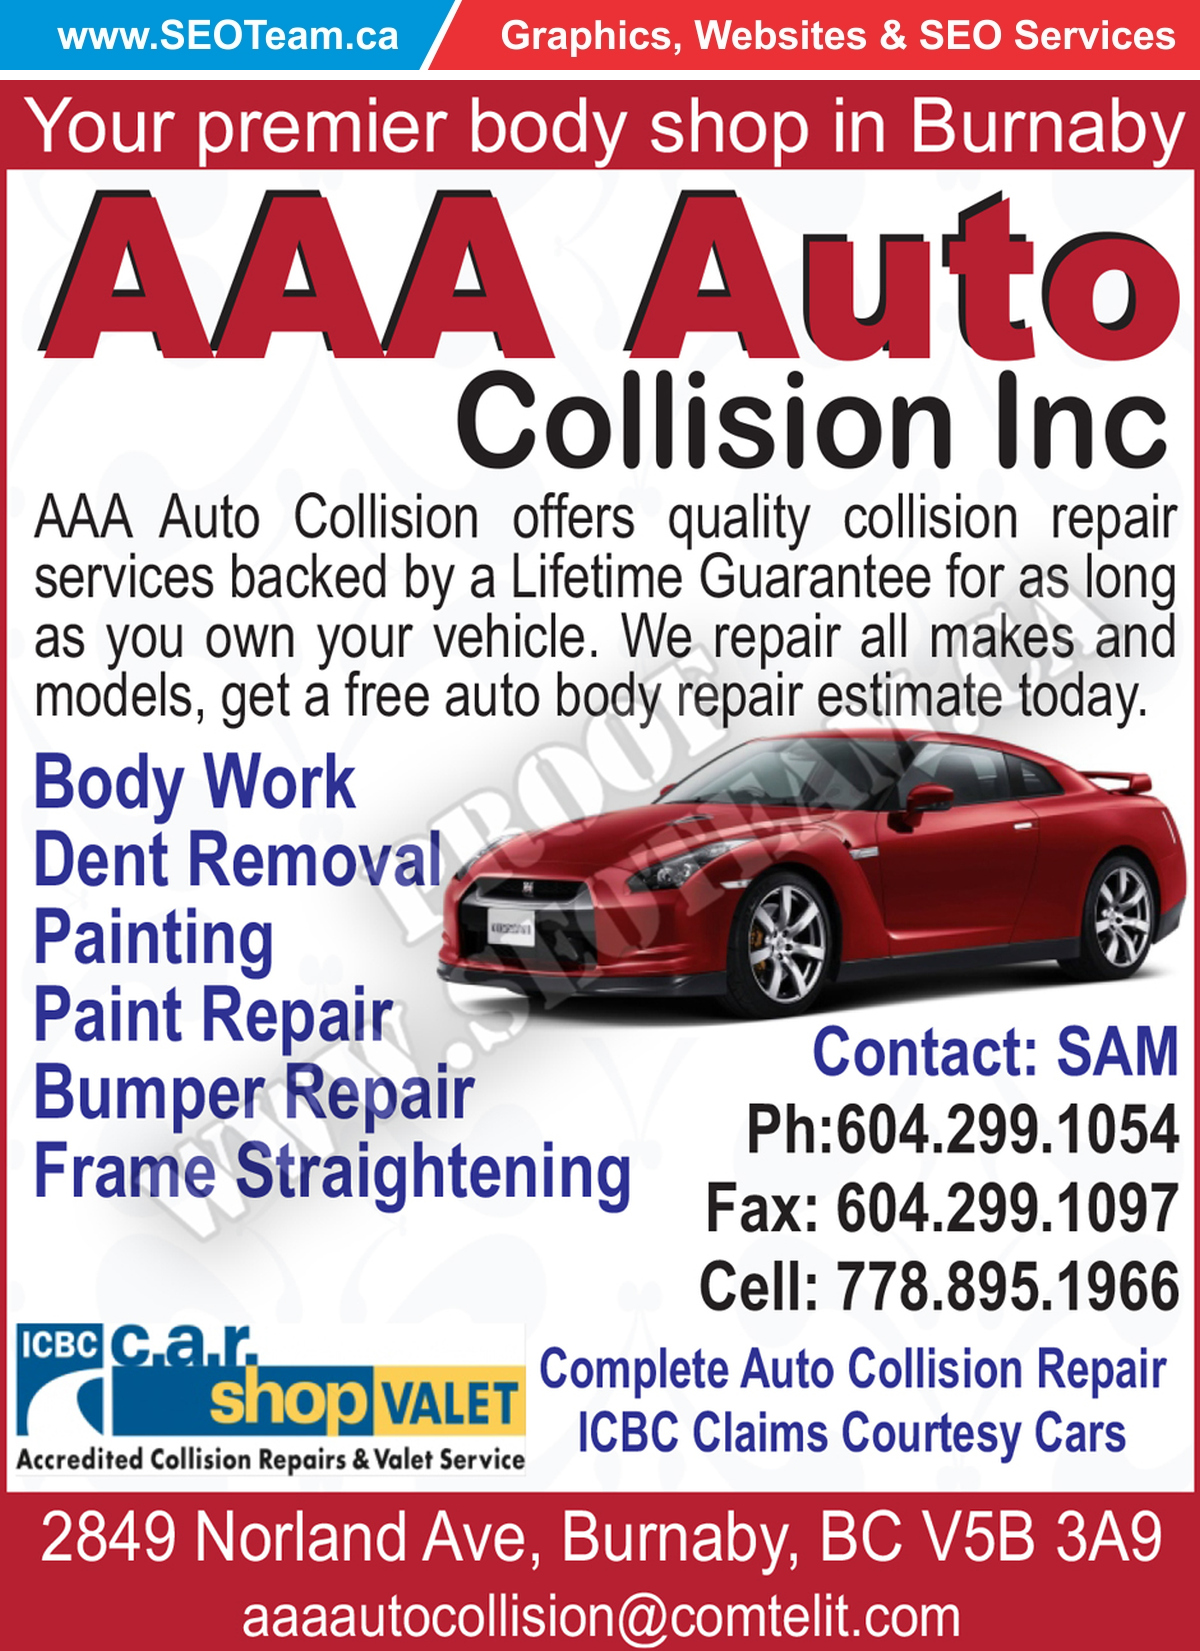 Aaa Auto Collision Inc Burnaby Bc Design By